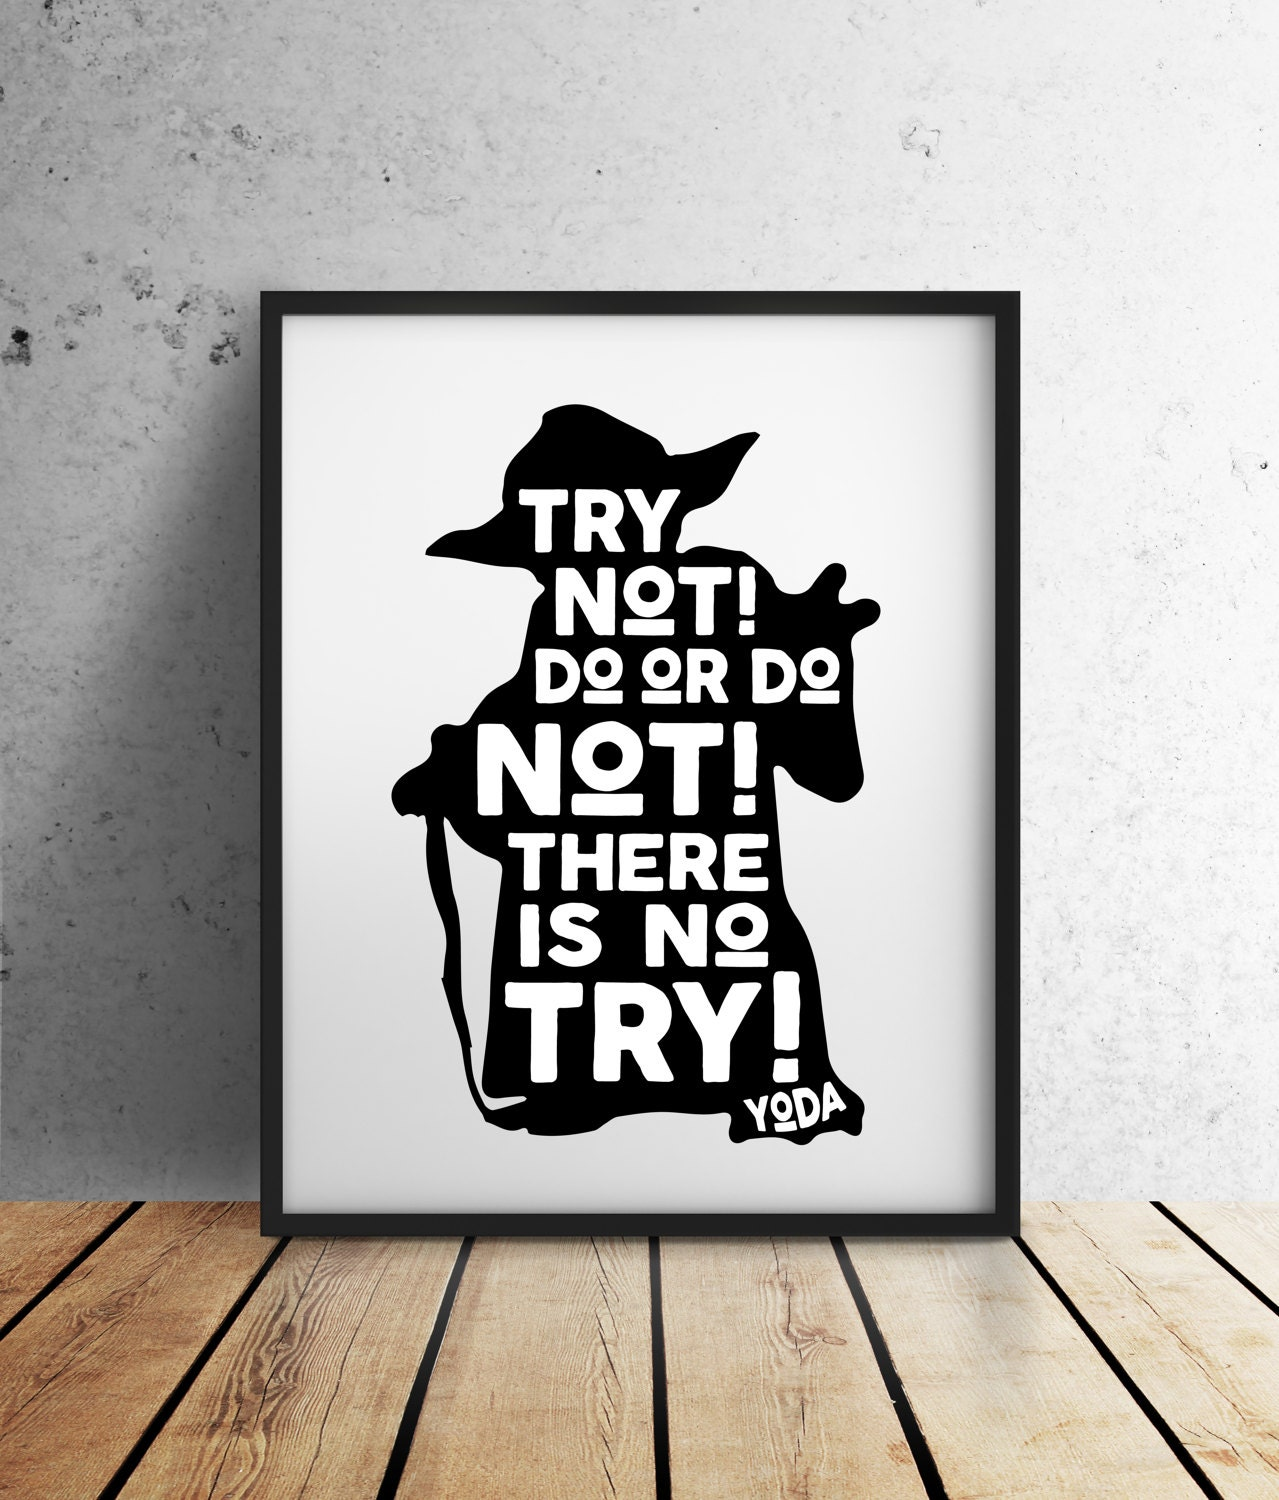 Yoda Quote There Is No Try: Star Wars Digital Download Try Not! Do Or Do Not! There Is